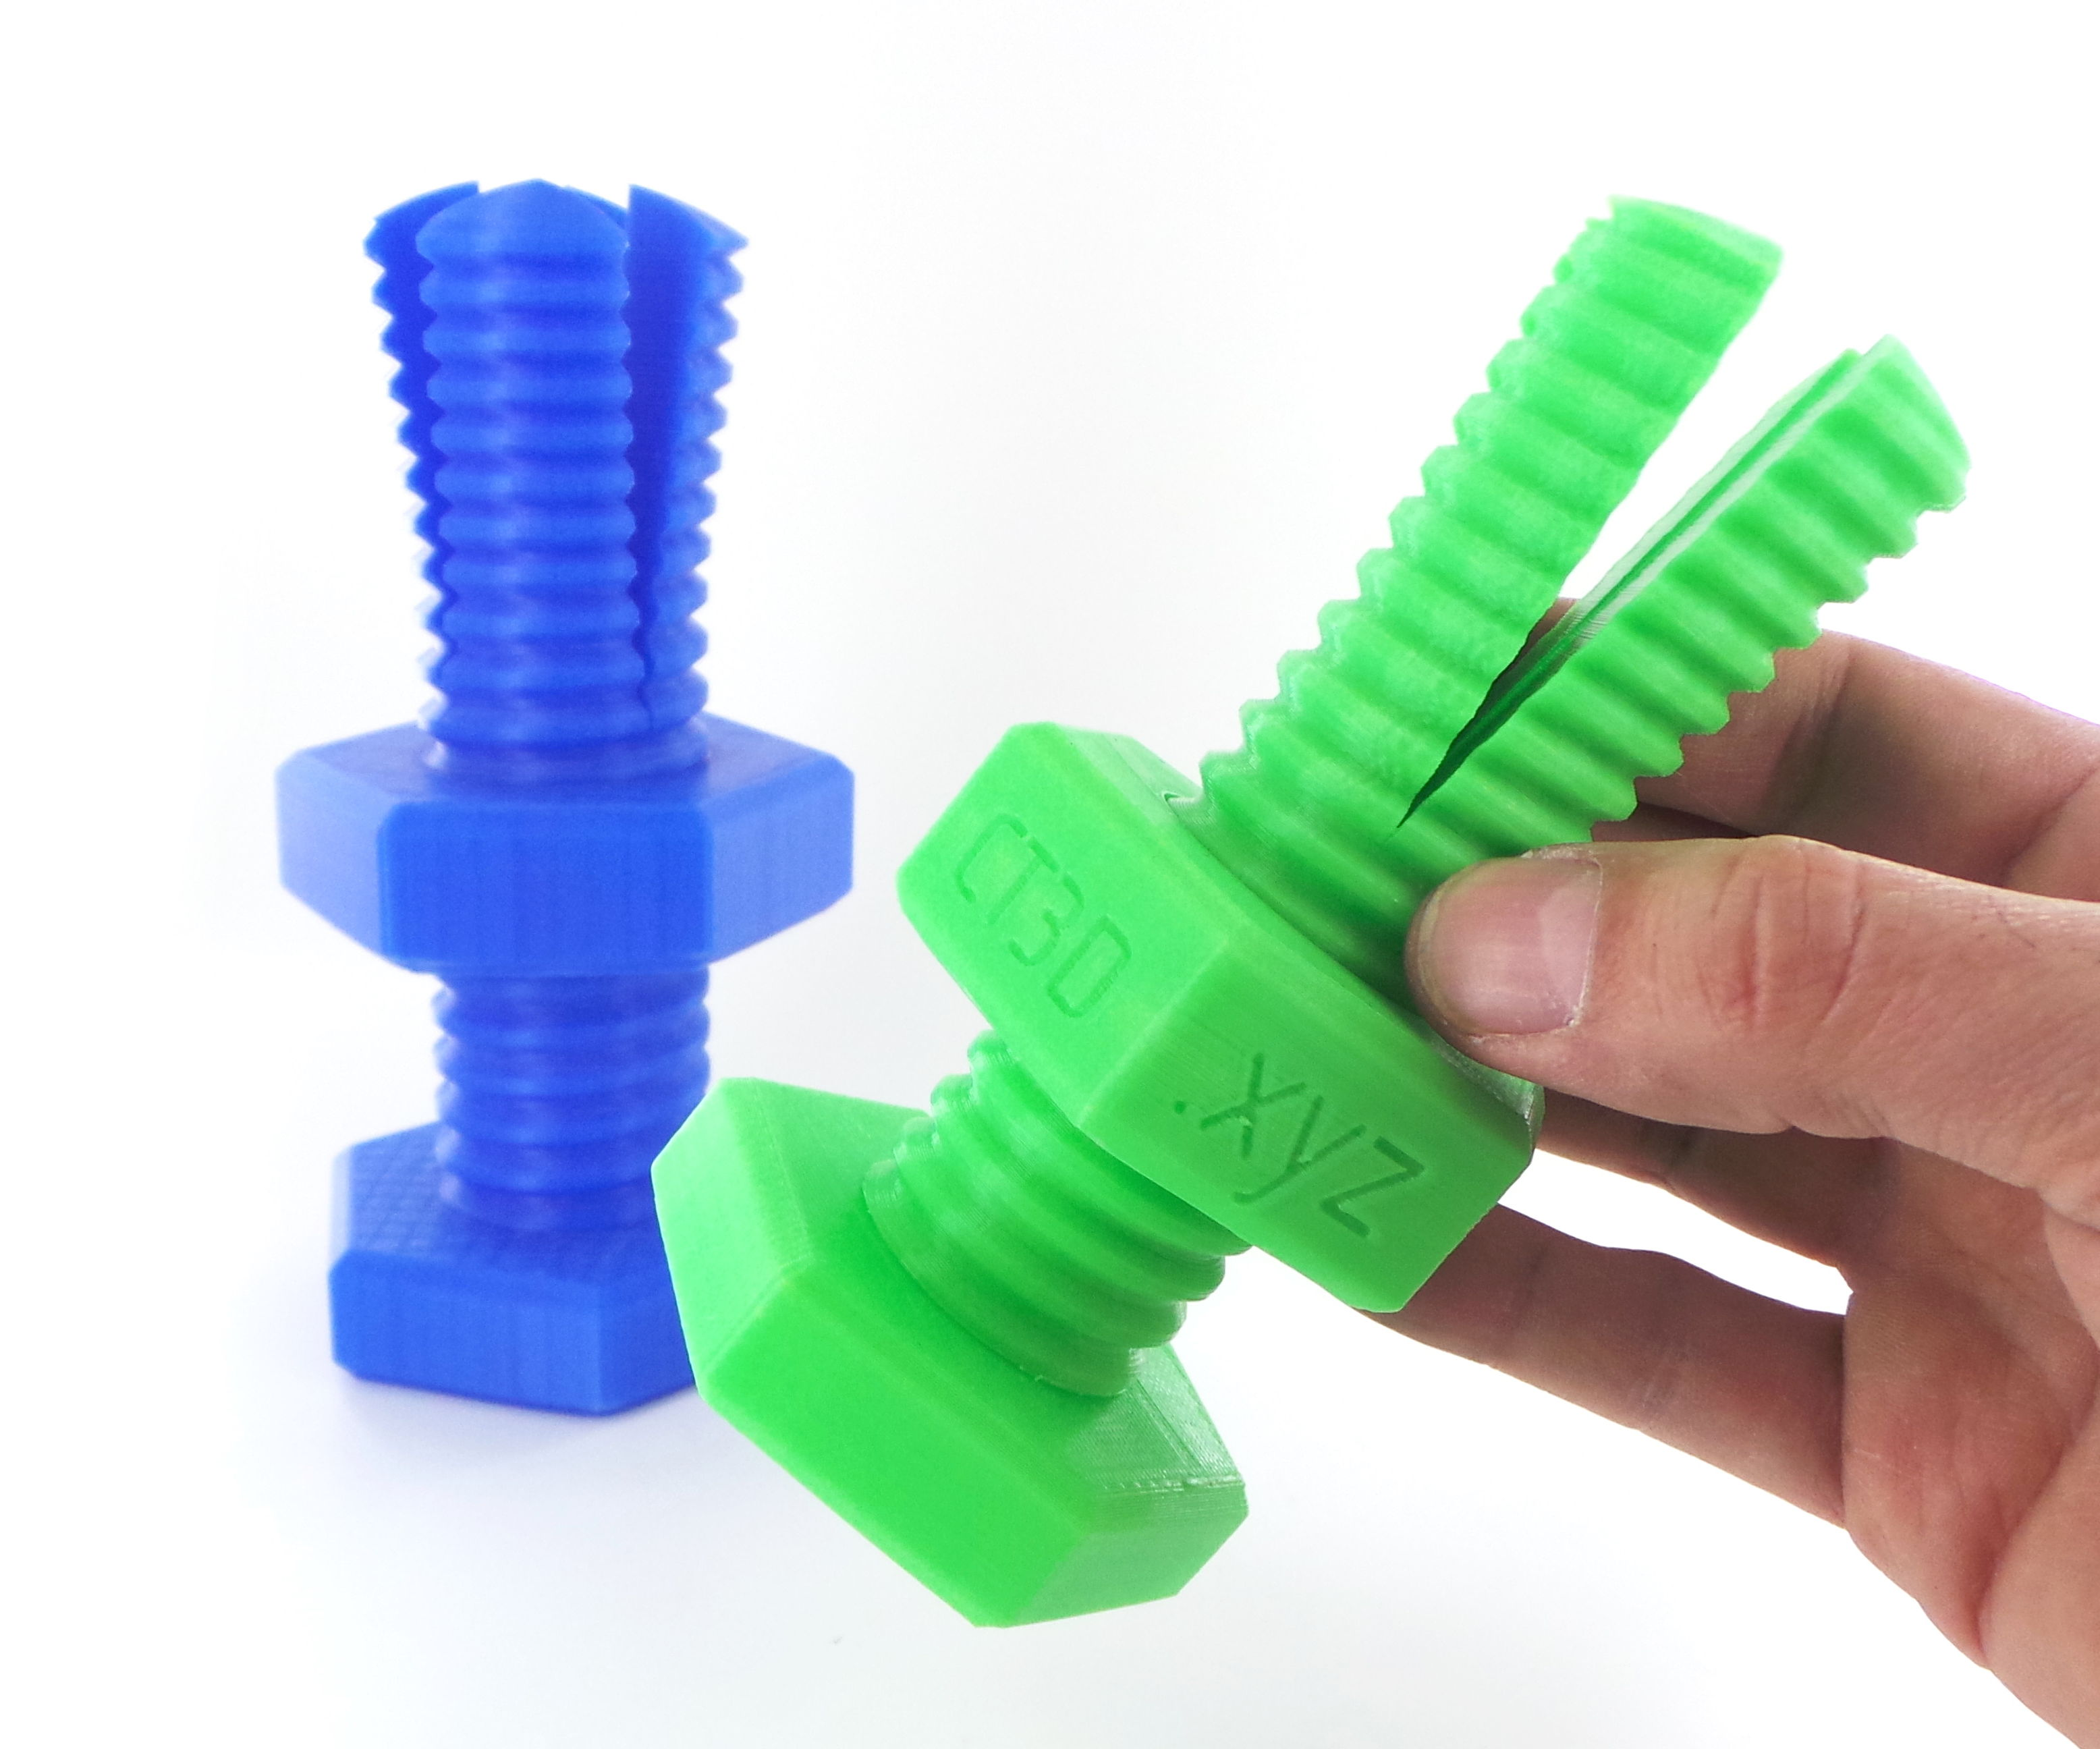 Impossible 3D-printed bolt and nut